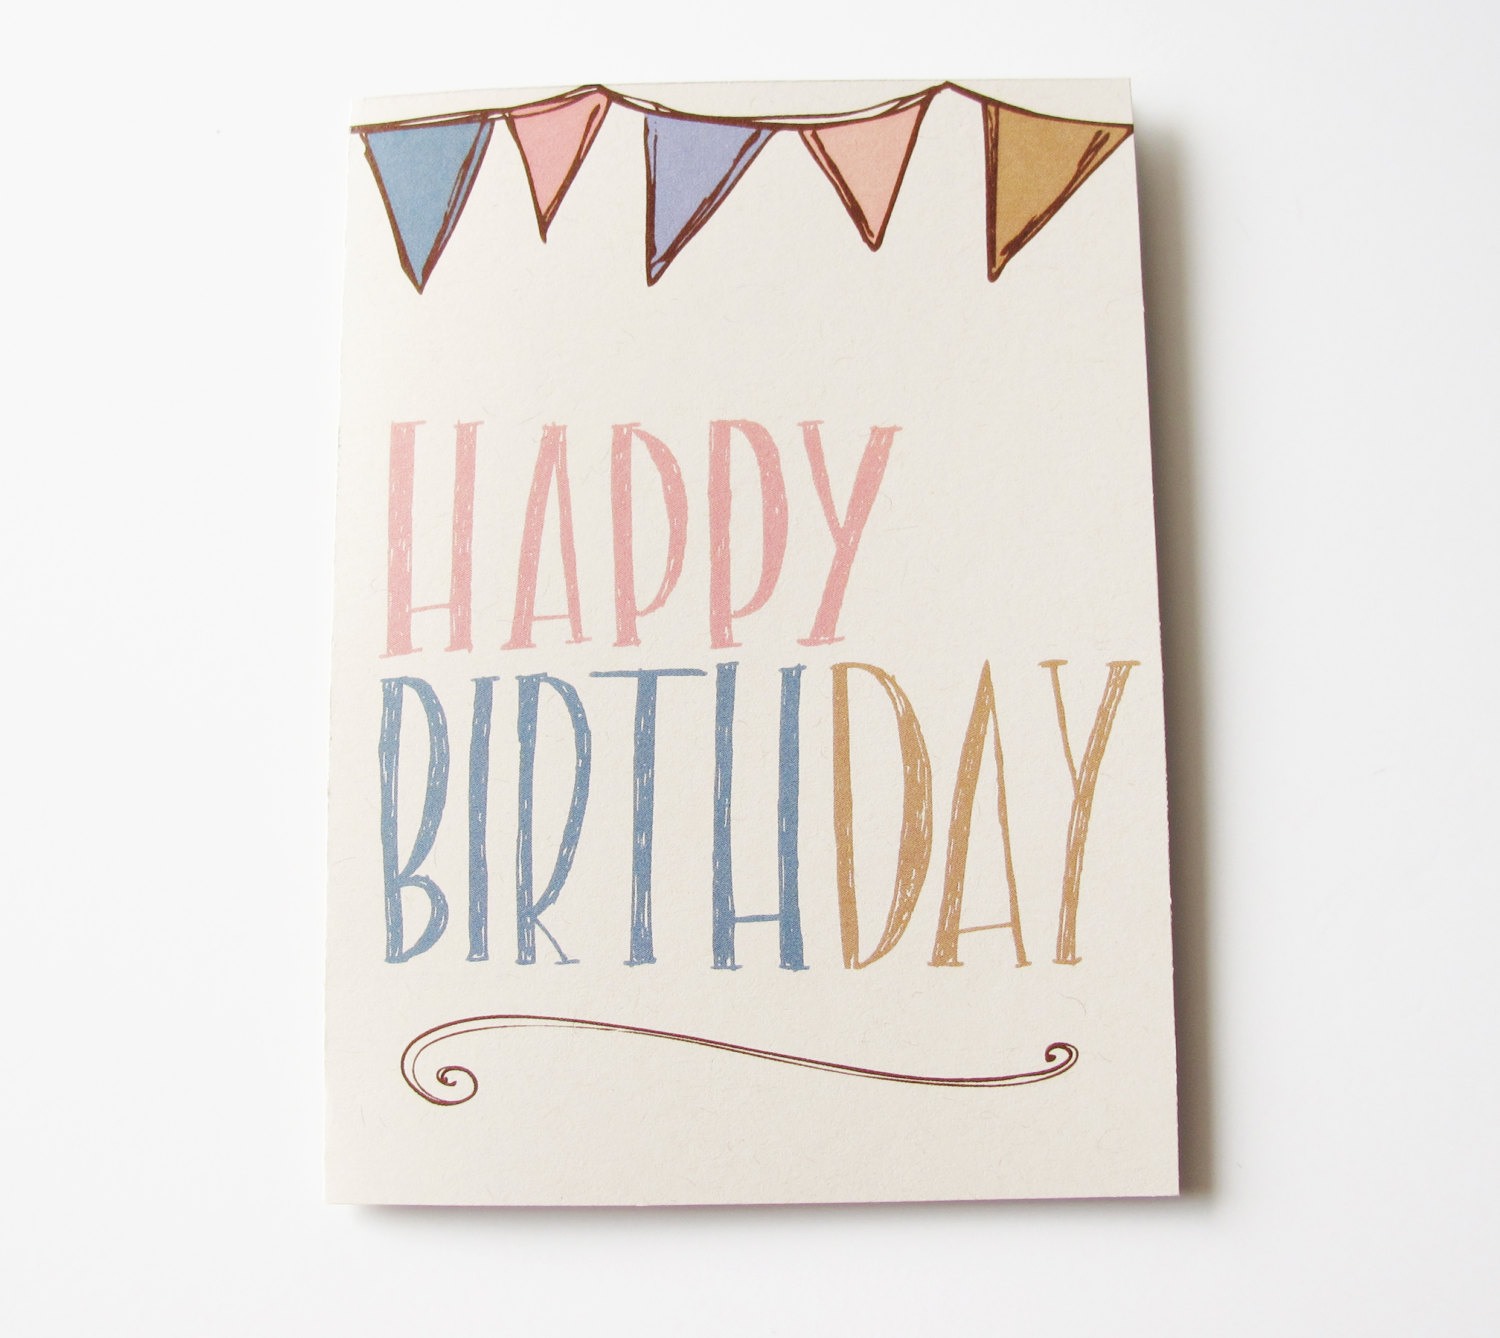 Drawn cards happy birthday Card and — lettering drawn